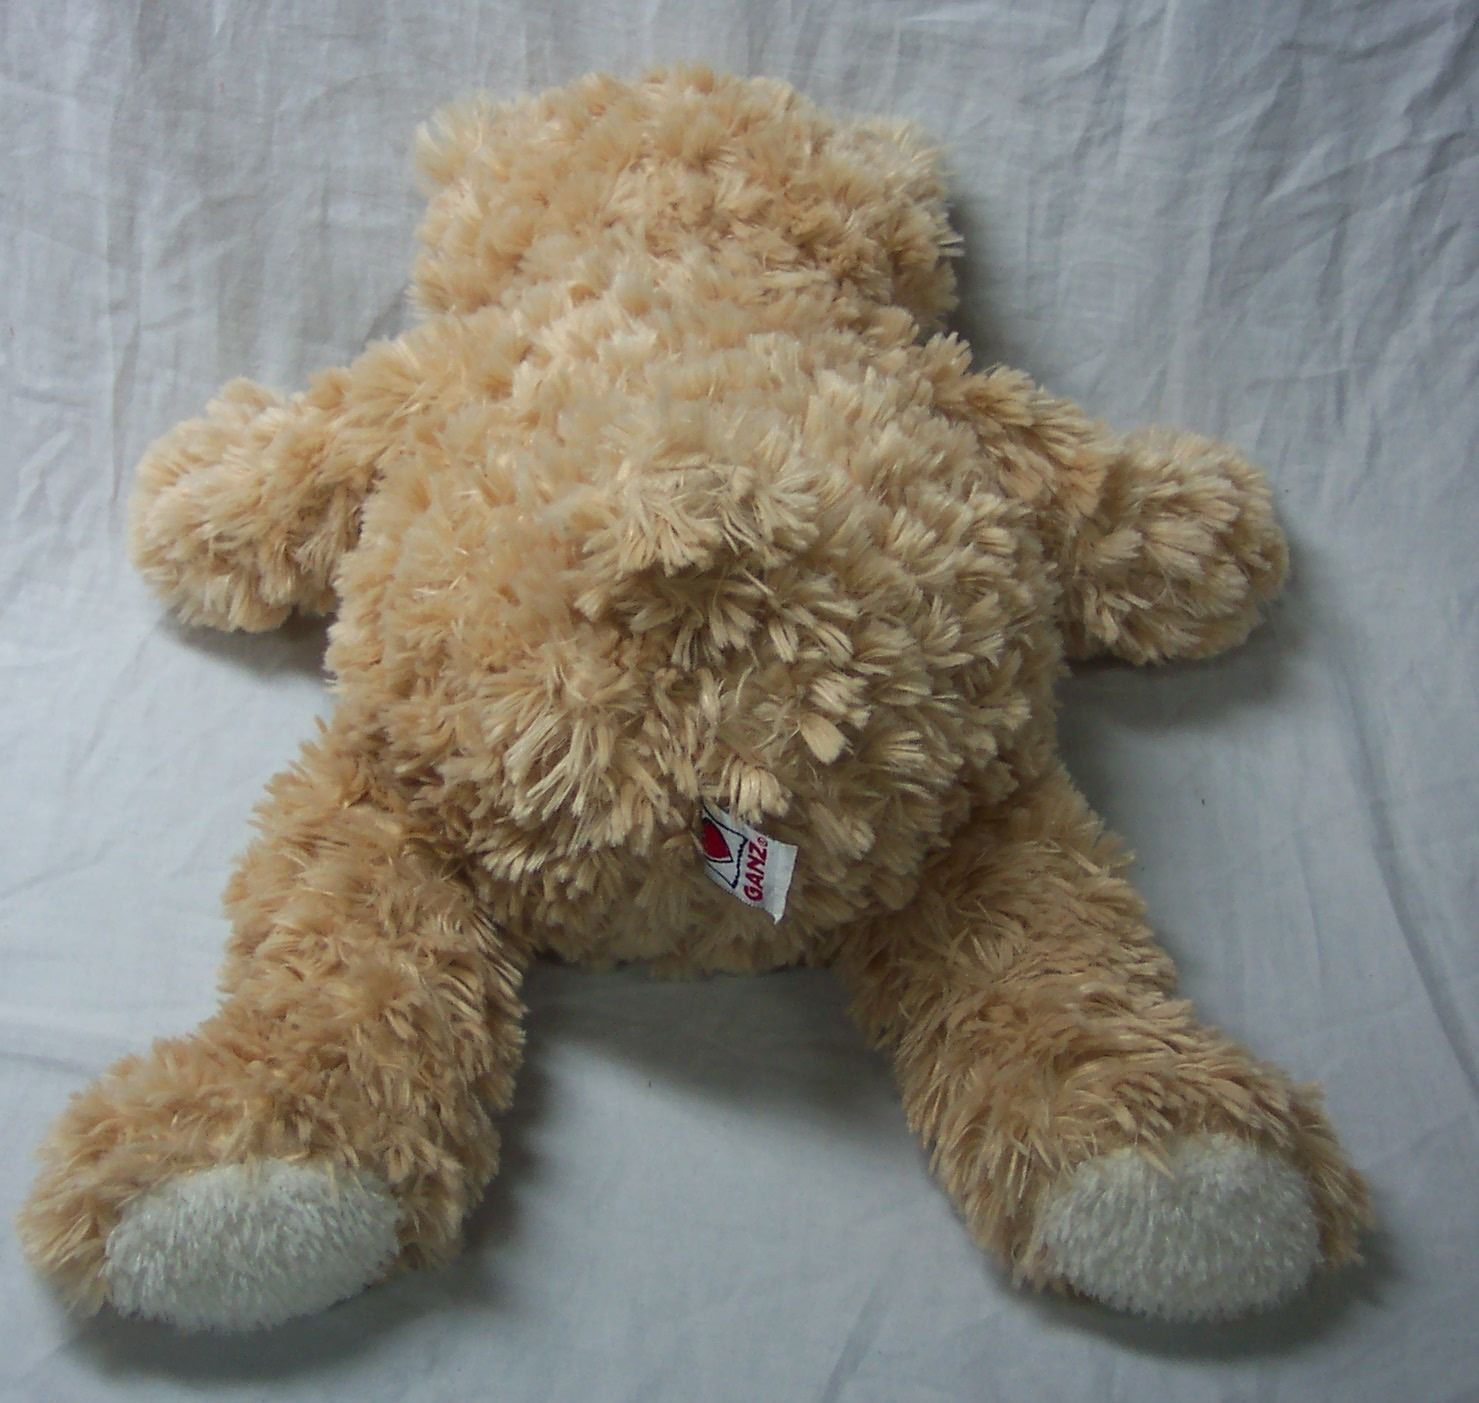 "GANZ VERY SOFT BIG LIGHT BROWN 15"" TEDDY BEAR Plush Stuffed Animal TOY"